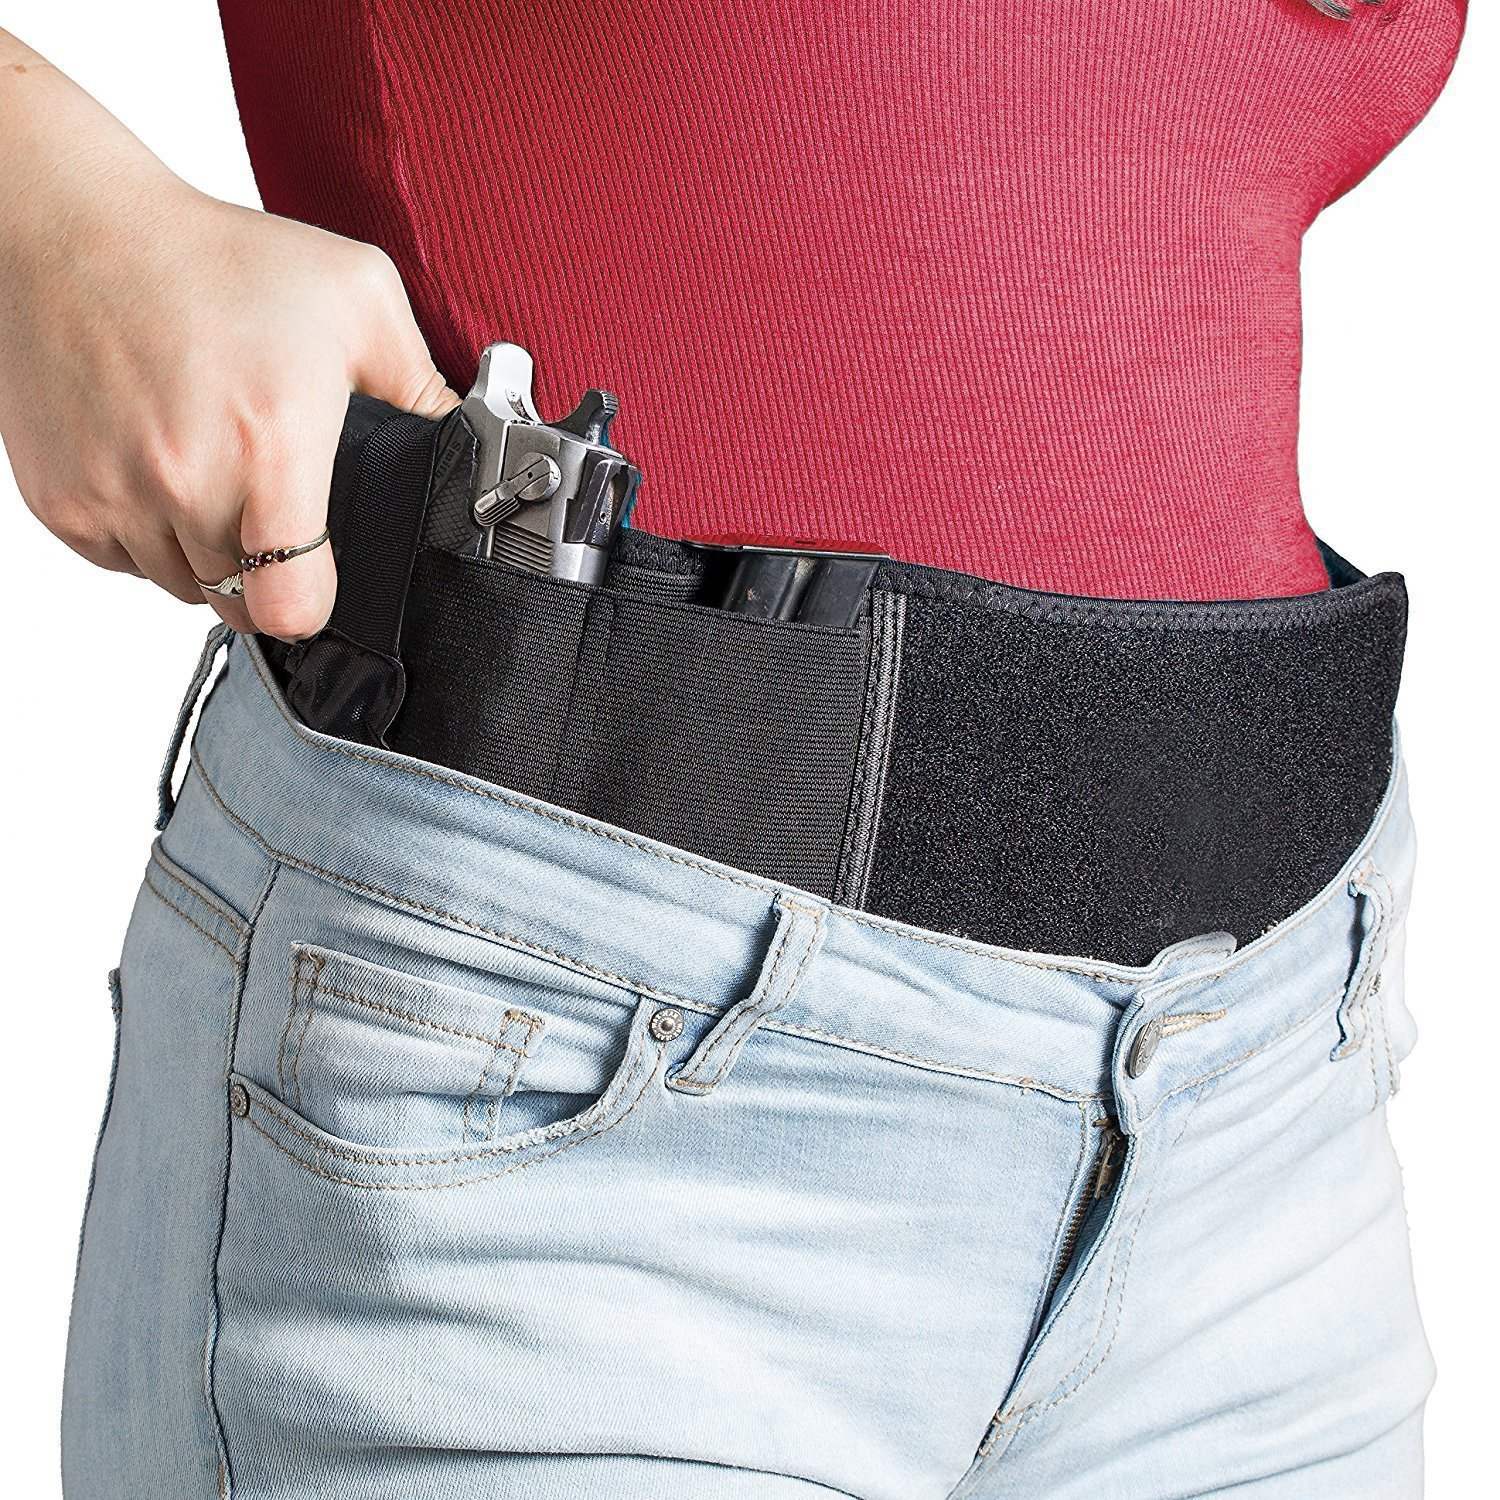 Concealed Carry Belly Band, Neoprene Gun Holster Fits Under Shirt and Clothing (5\